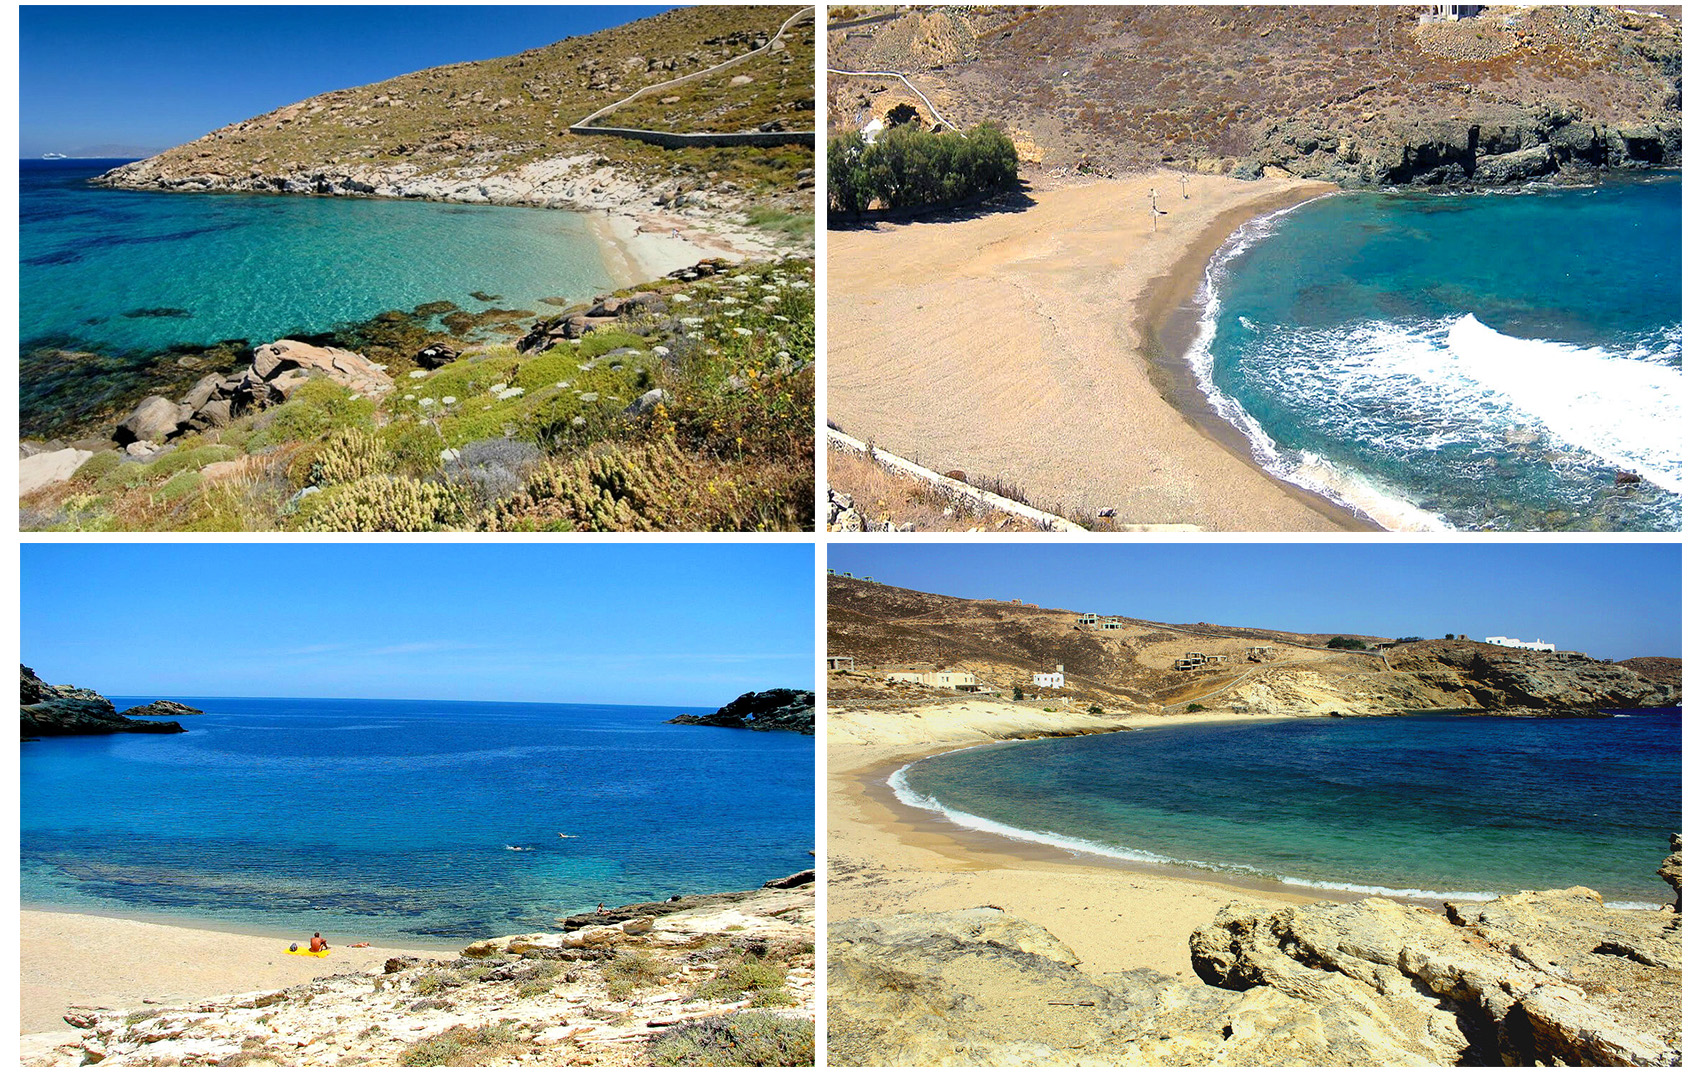 Discover the secret Mykonos: 4 + 1 secluded beaches